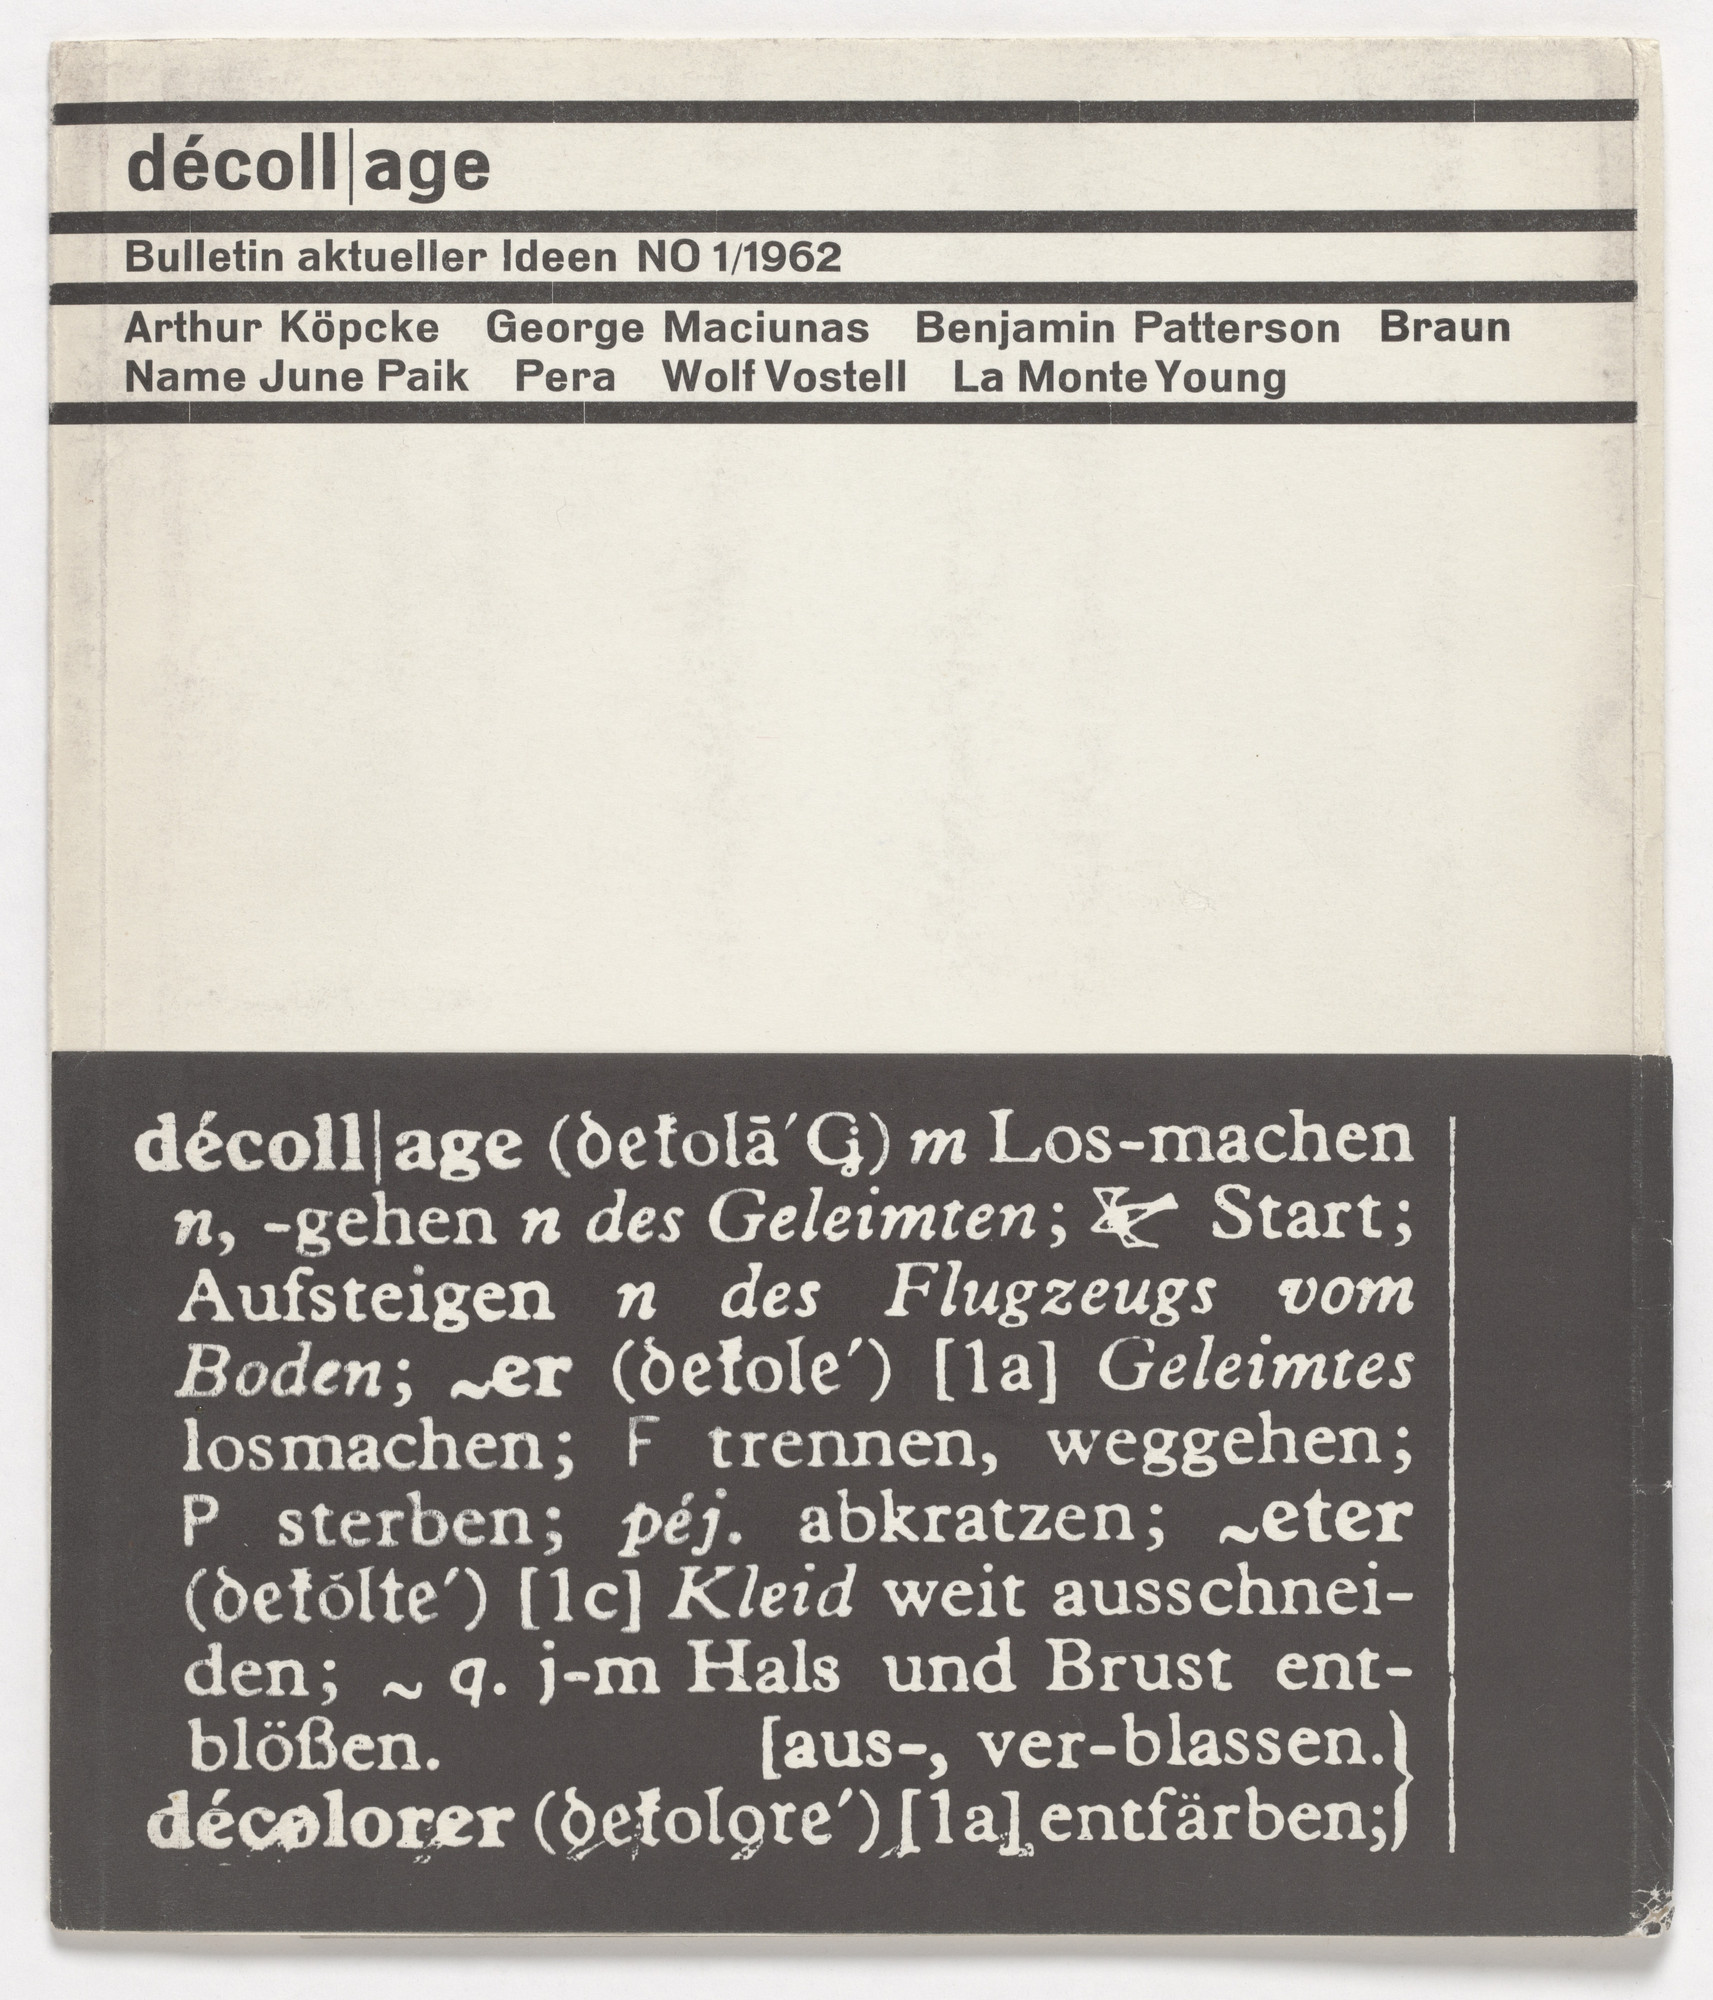 Various Artists, Arthur Köpcke, George Maciunas, Benjamin Patterson, Nam June Paik, Wolf Vostell, La Monte Young. dé-coll/age, no. 1. 1962